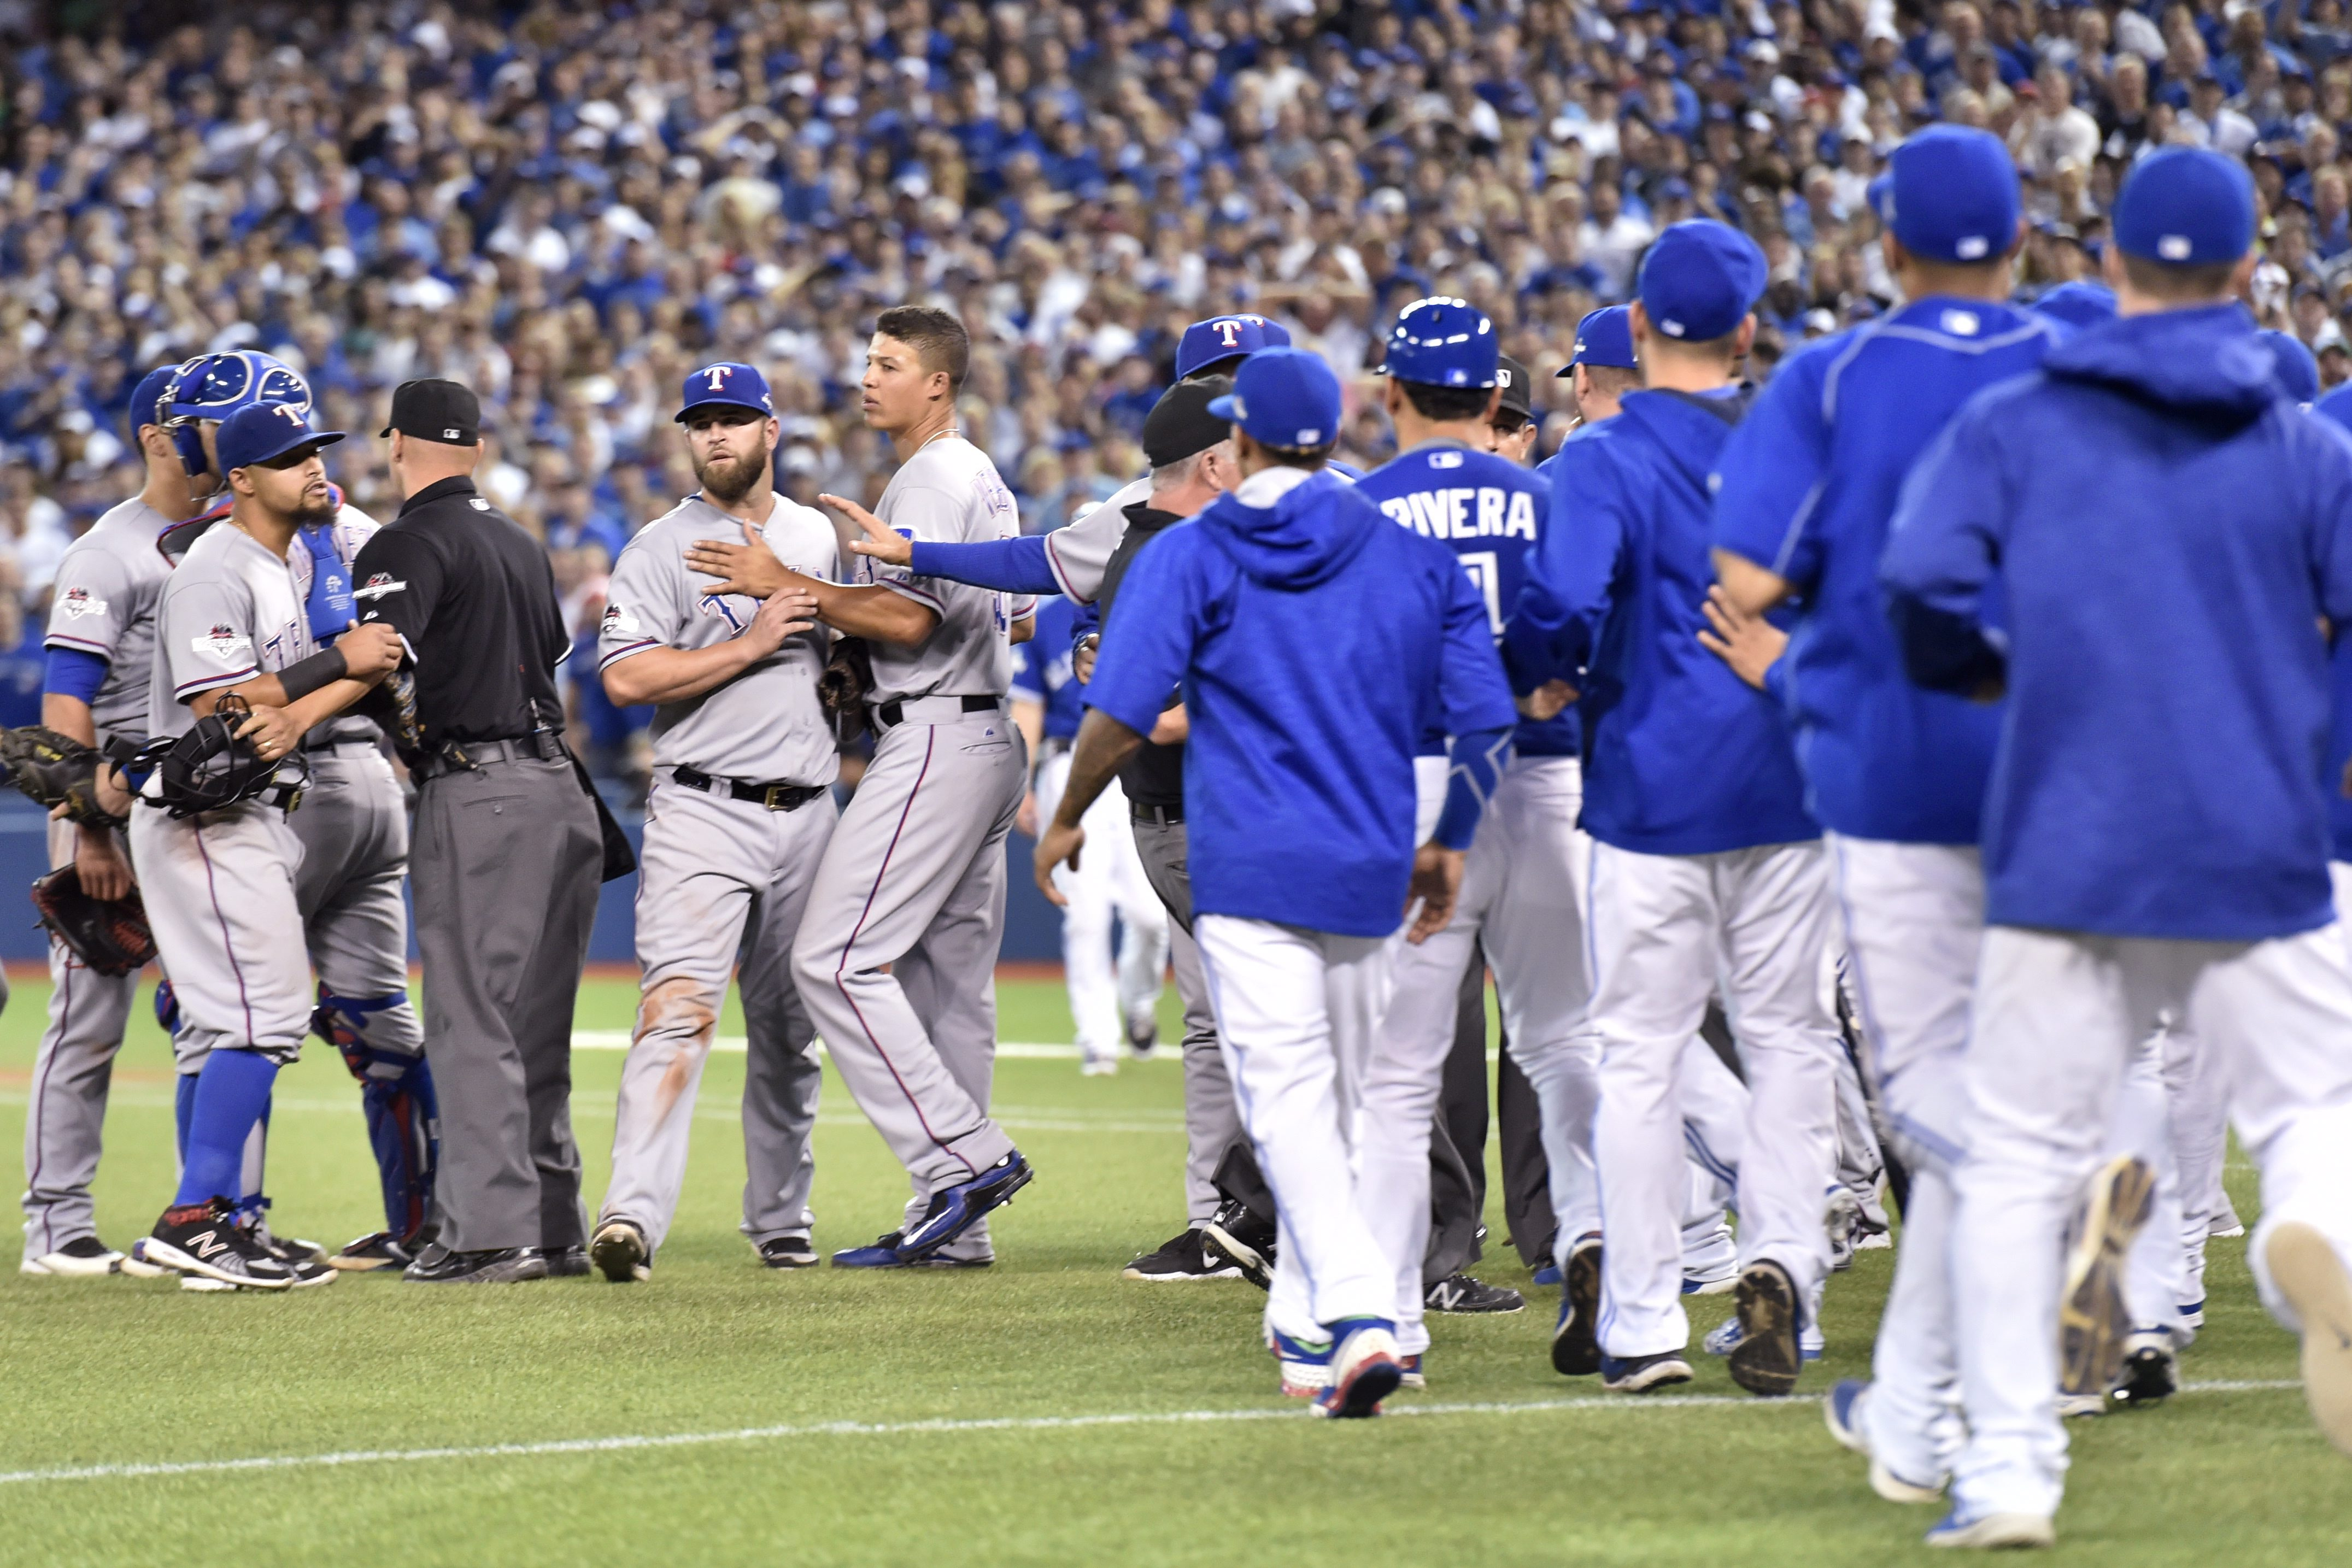 Players on both sides are restrained following an exchange of words between Toronto Blue Jays' Josh Donaldson and Texas Rangers' Keone Kela during the 13th inning of baseball Game 2 of the American League Division Series in Toronto, Friday, Oct. 9, 2015.